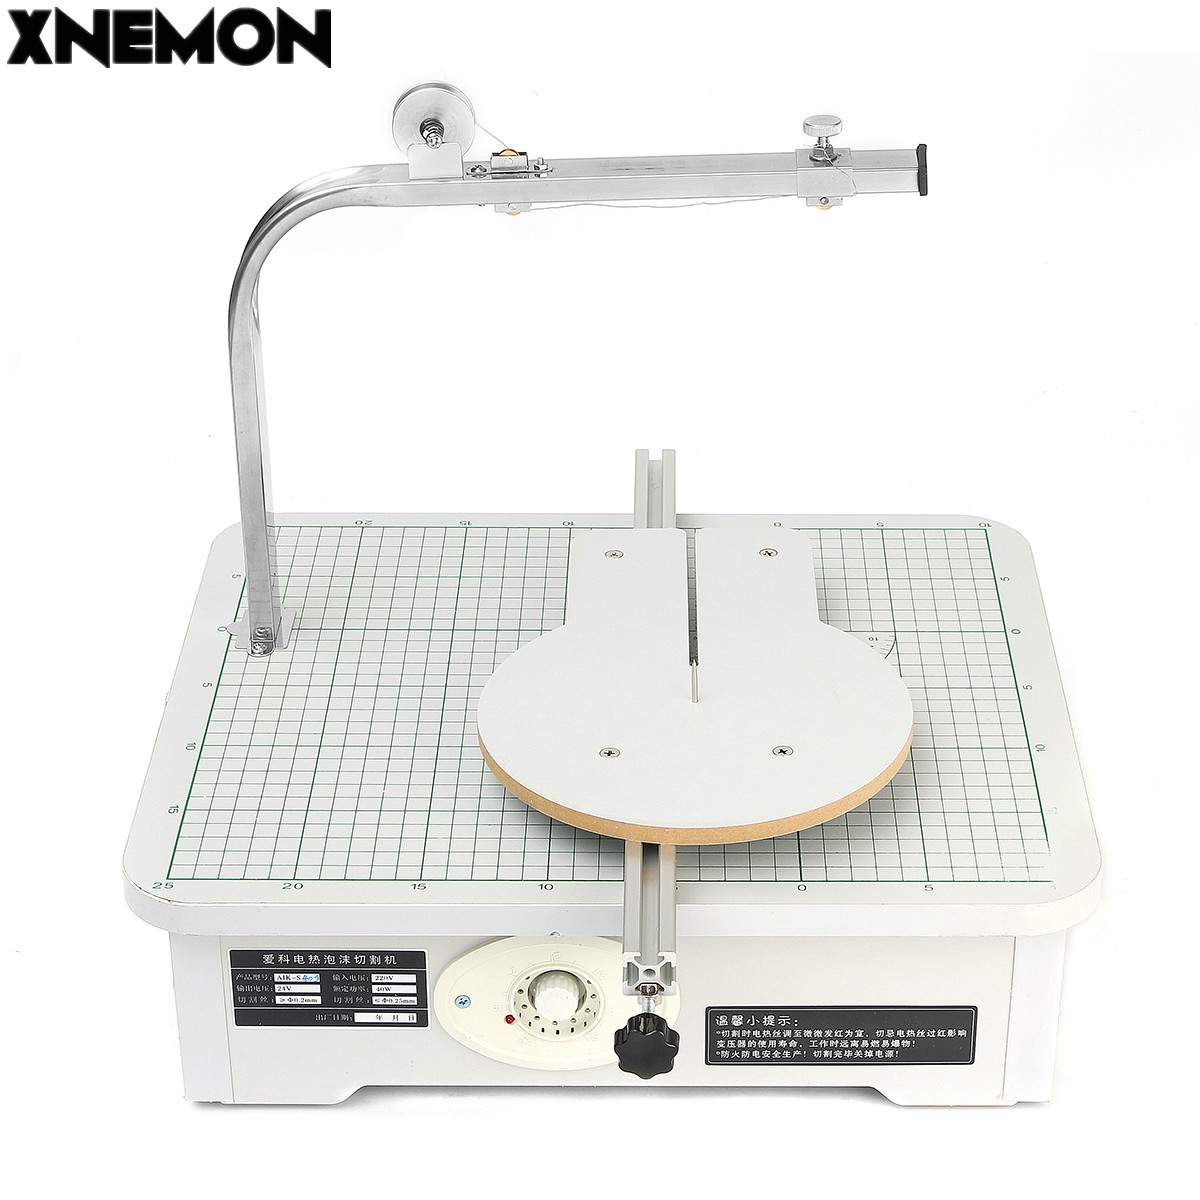 XNEMON 220V Board WAX Foam, Sponge, Pearl Cotton, Cutting Machine S403 Working Stand Table Tool Styrofoam Cutter CUTS FOAM KT craft hot knife styrofoam cutter 1pc 10cm pen cuts foam kt board wax cutting machine electronic voltage transformer adaptor